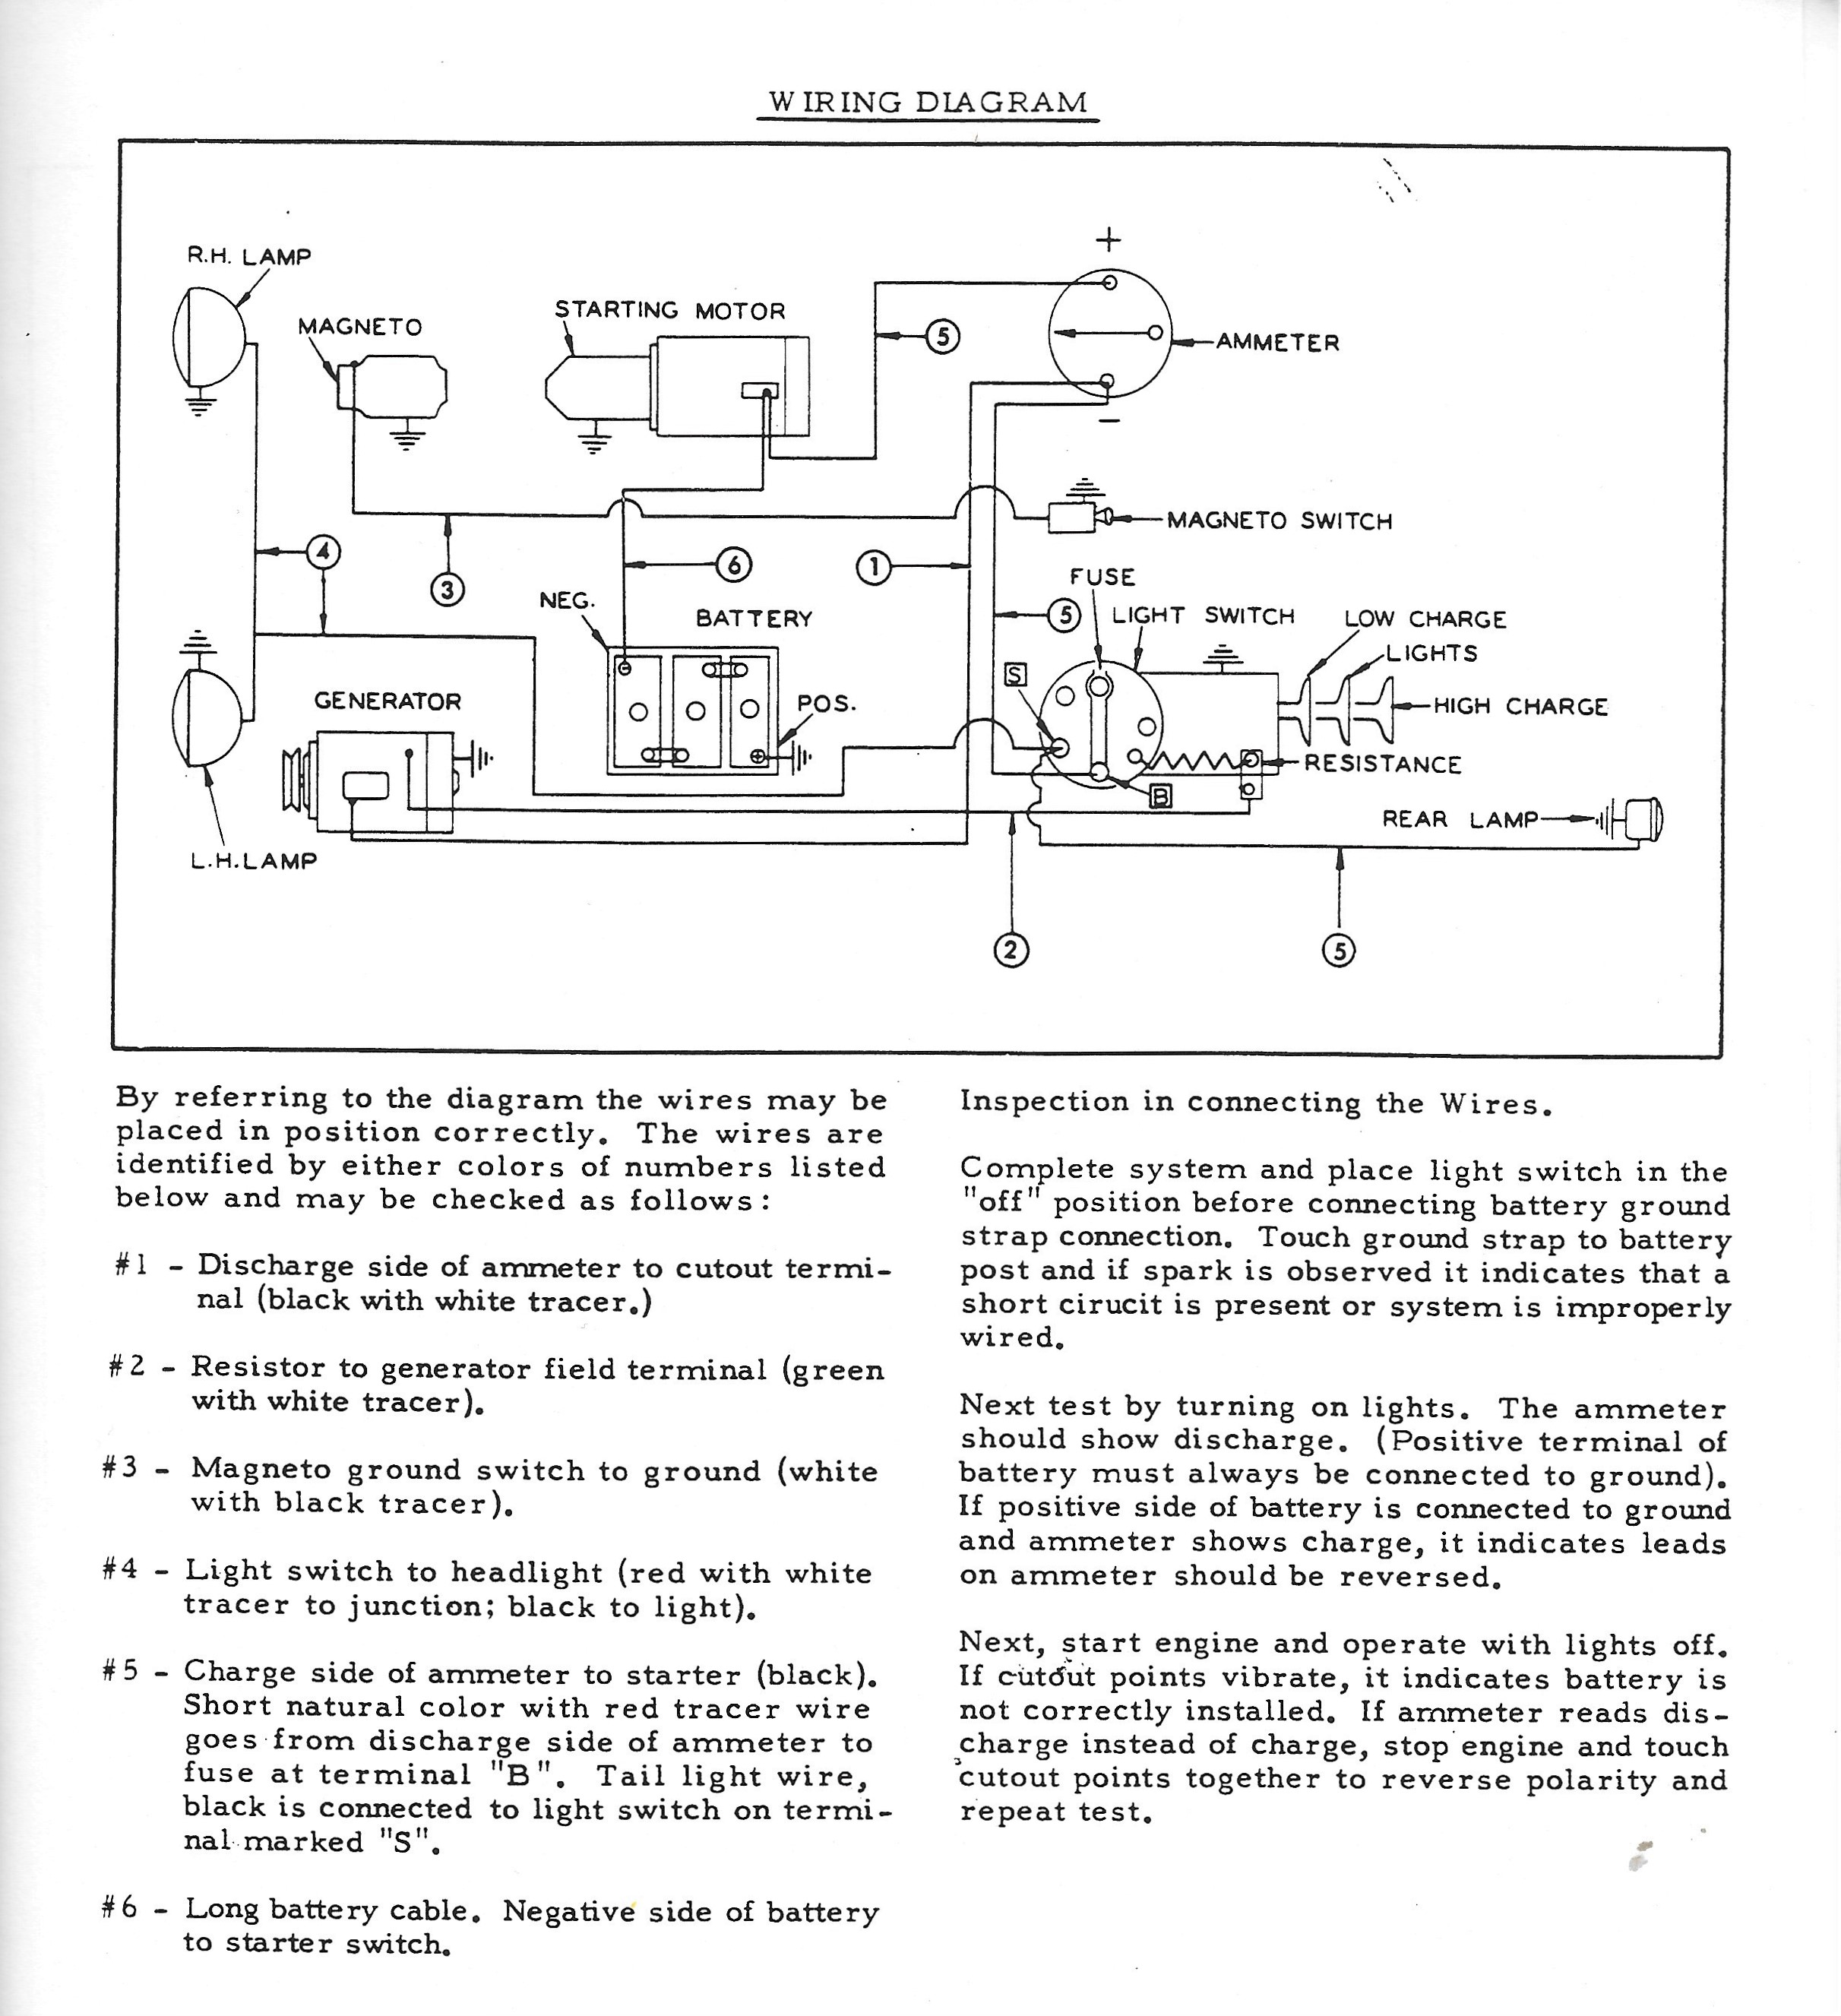 Where Do These Wires Go Allischalmers Forum Allis Chalmers Magneto Wiring Diagram Will This Help